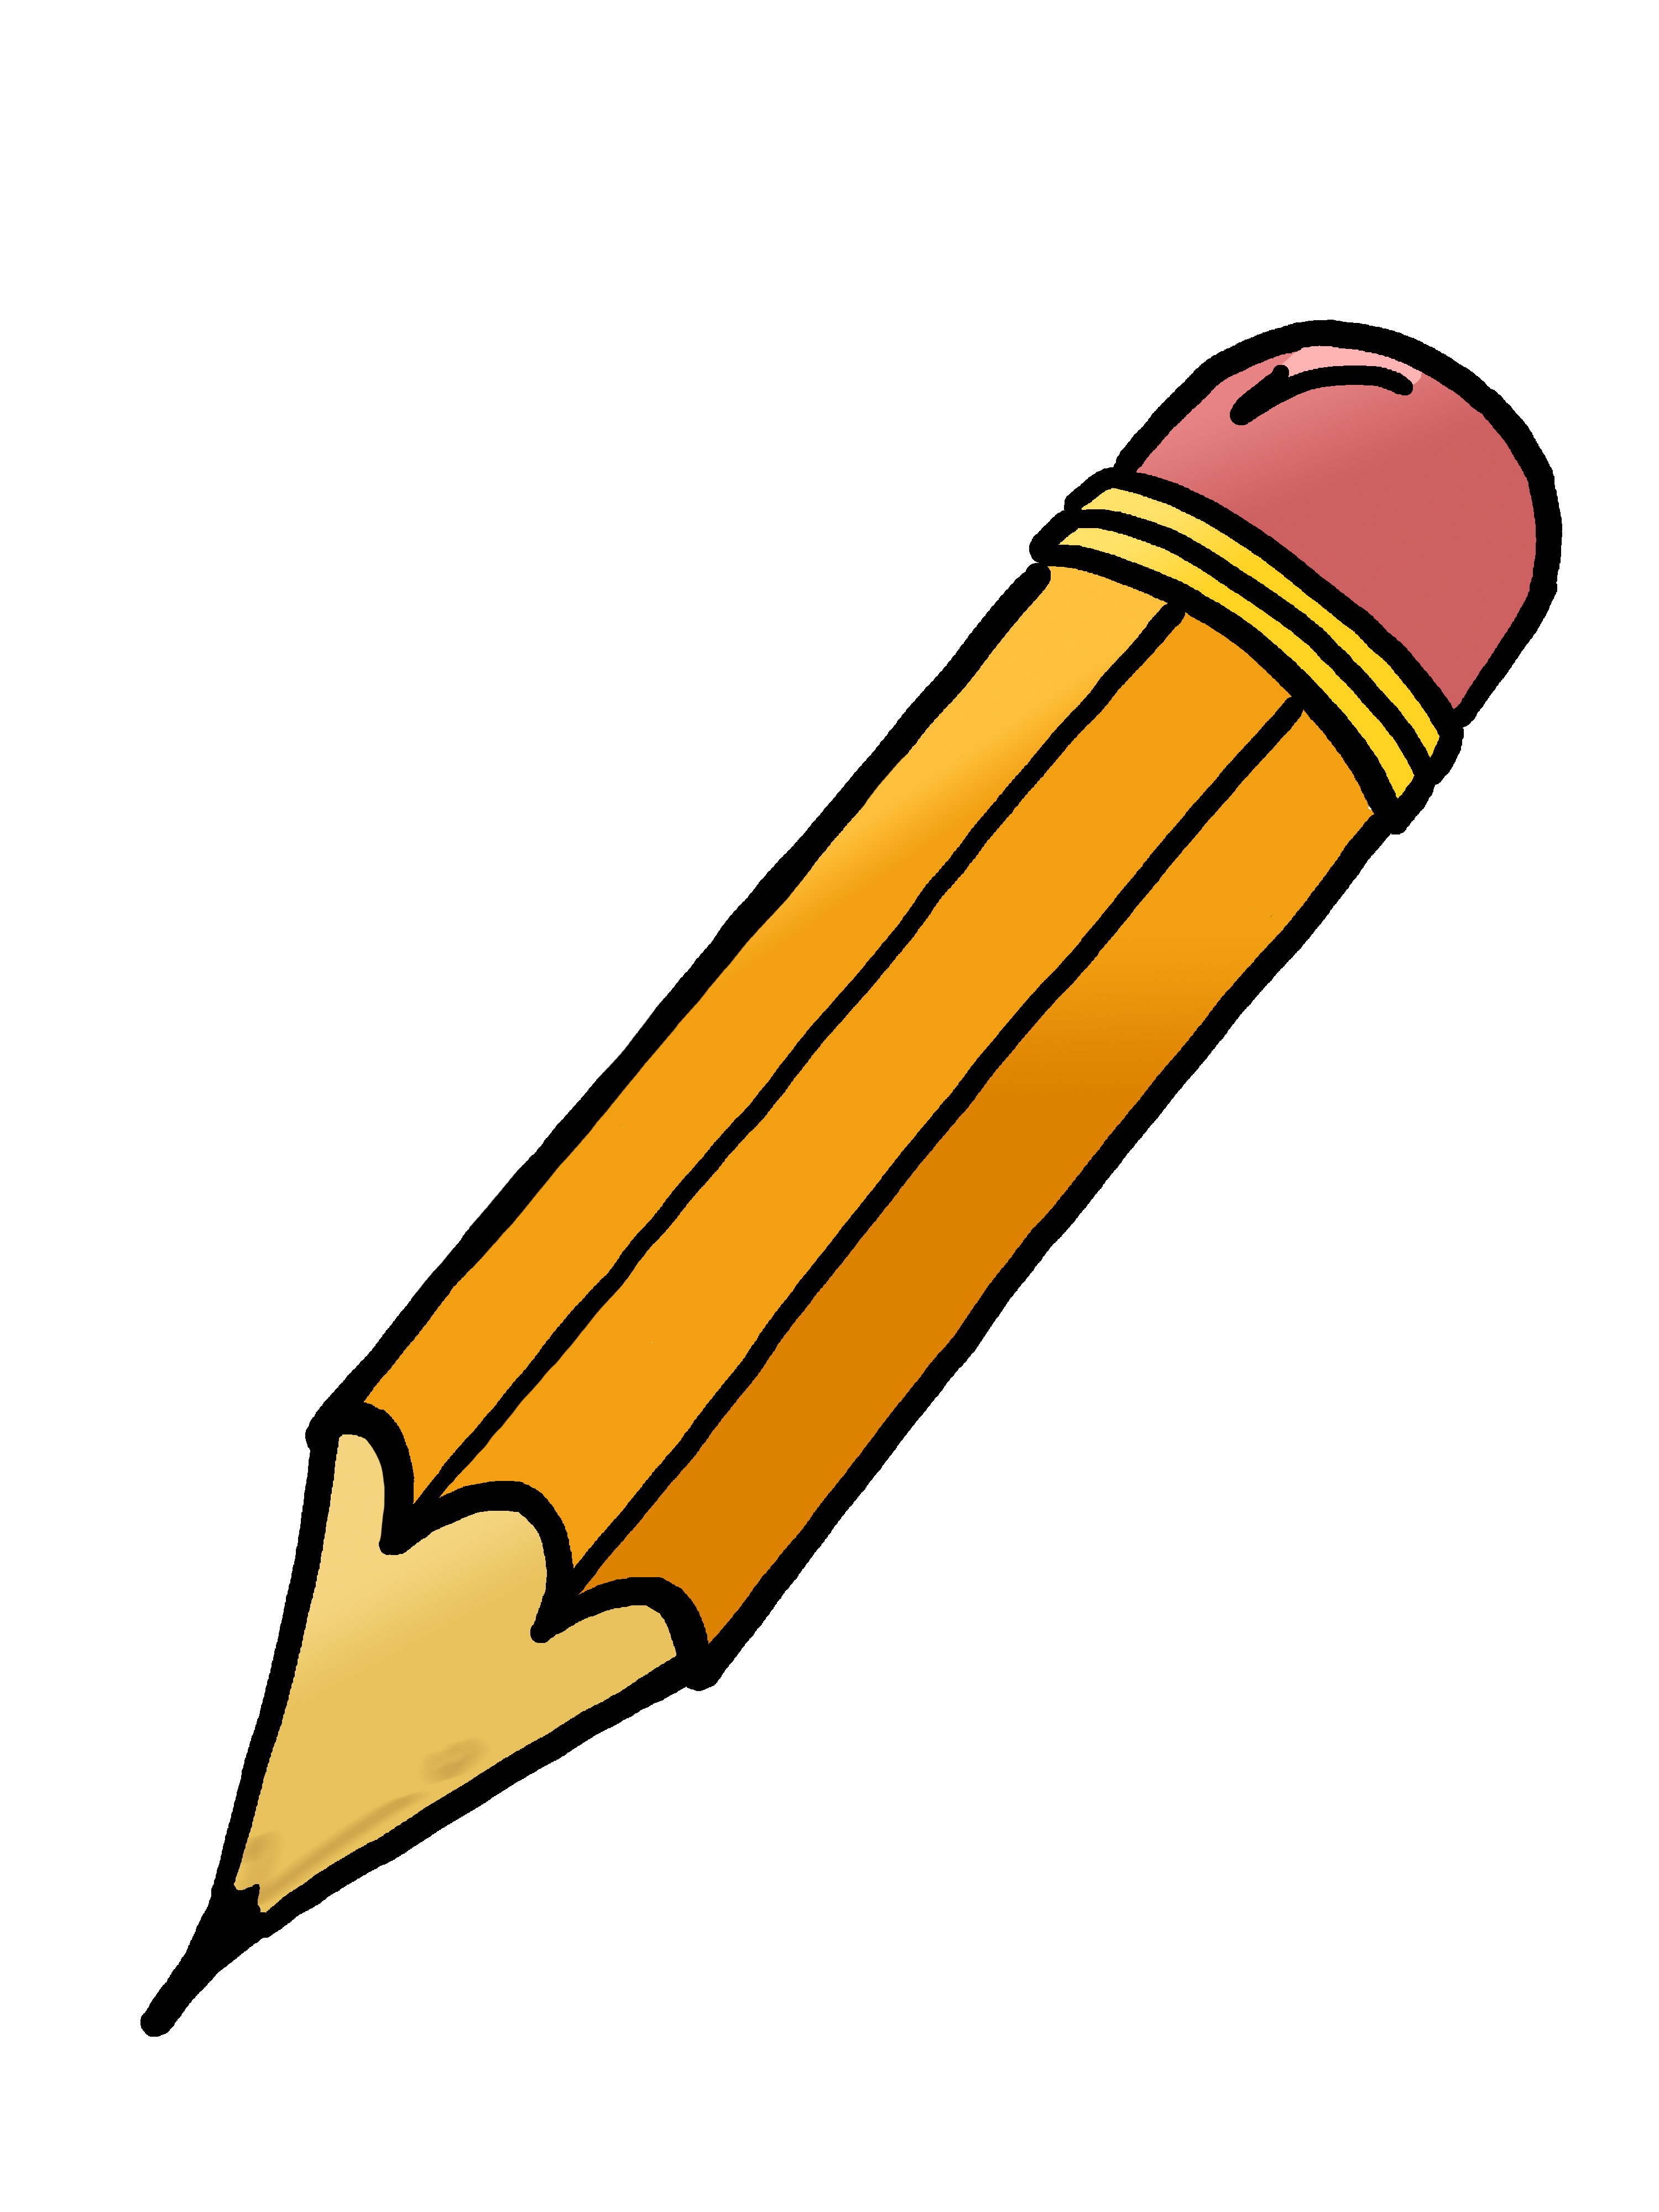 Pencil download